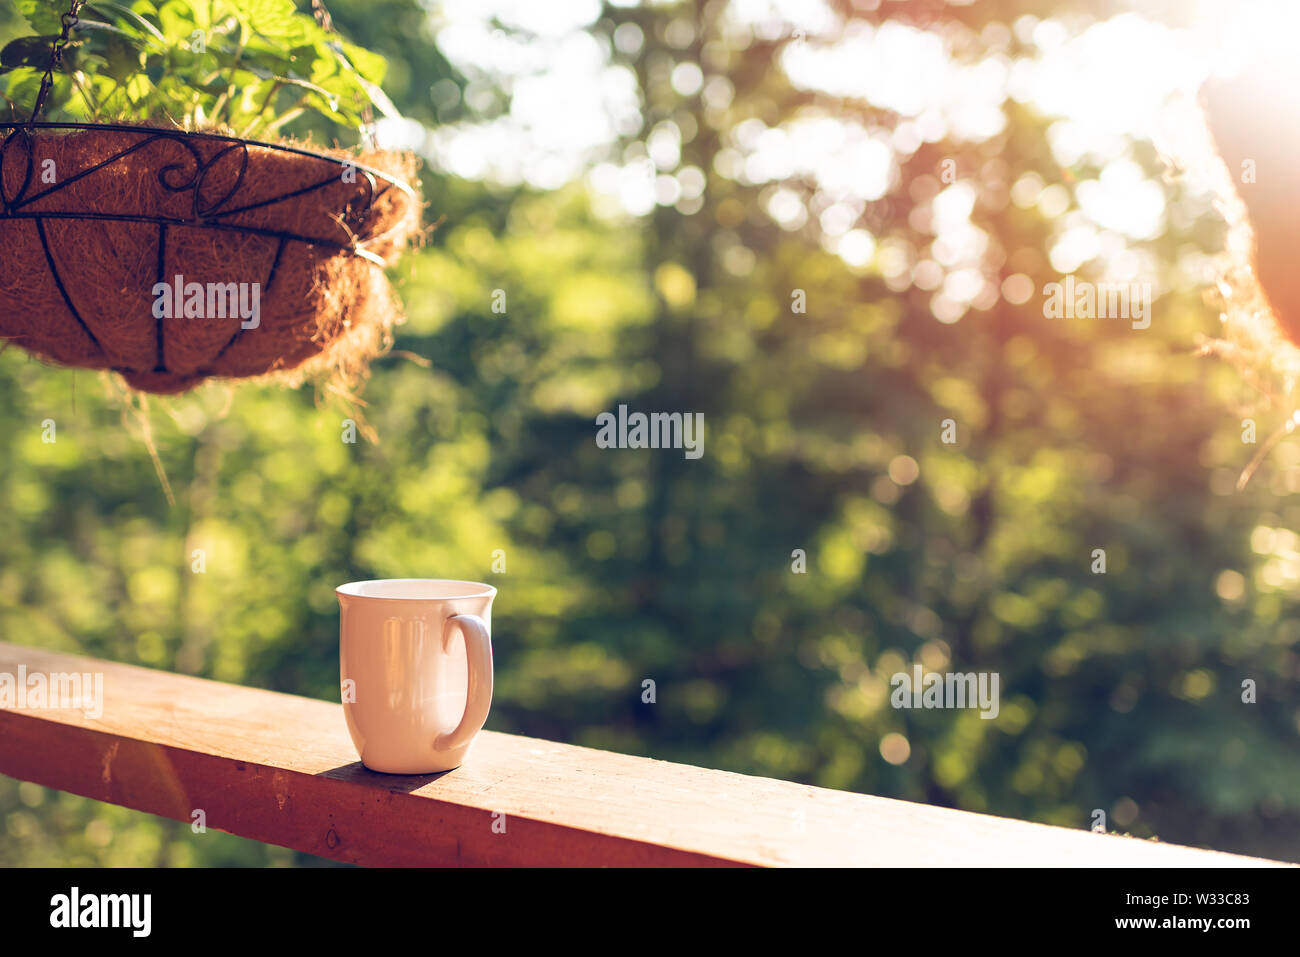 Hanging potted plant with bokeh background on porch of house with sunrise sun and coffee mug on wooden cabin cottage - Stock Image